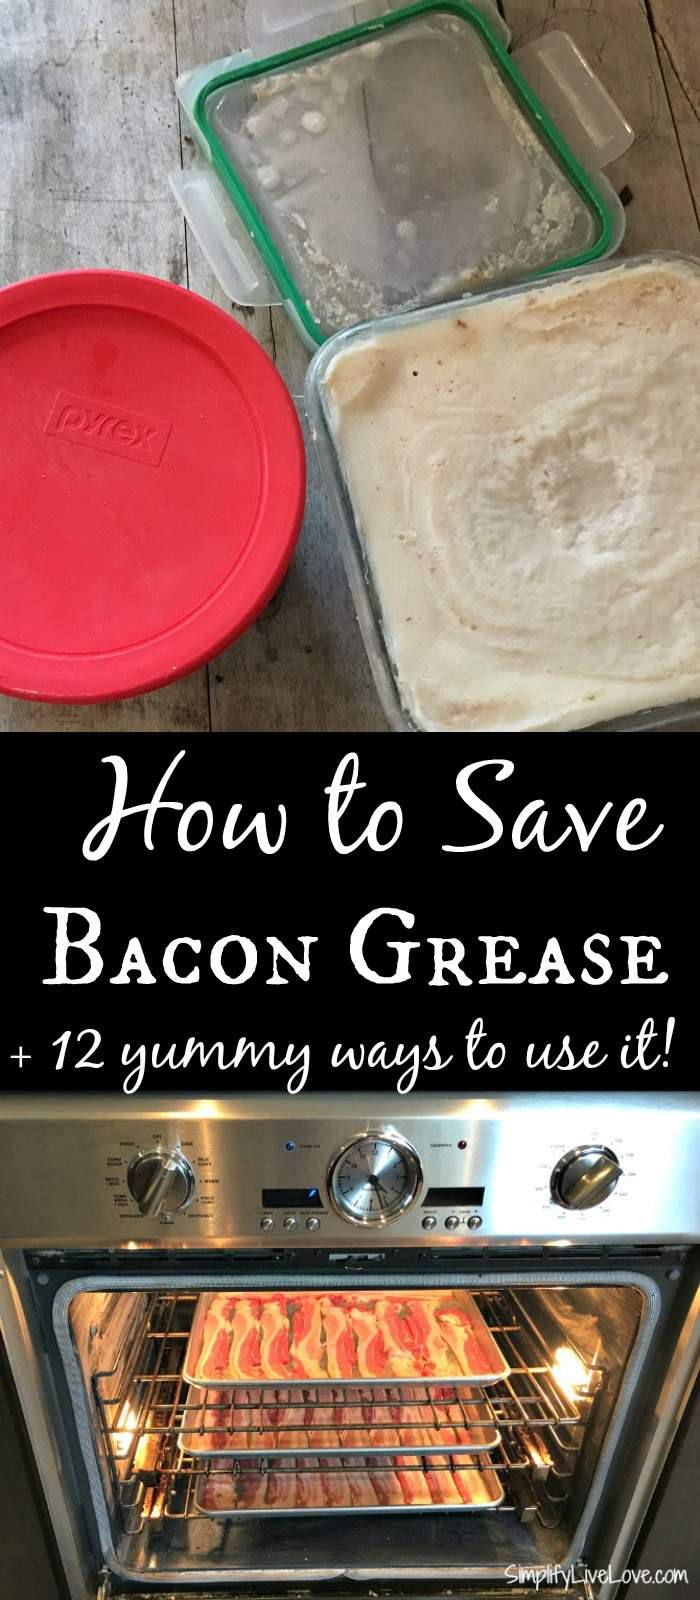 How to Save Bacon Grease & 12 yummy ways to use it.! It's easy to batch cook bacon and save the bacon grease and you will love these delicious ideas for how to use the grease!